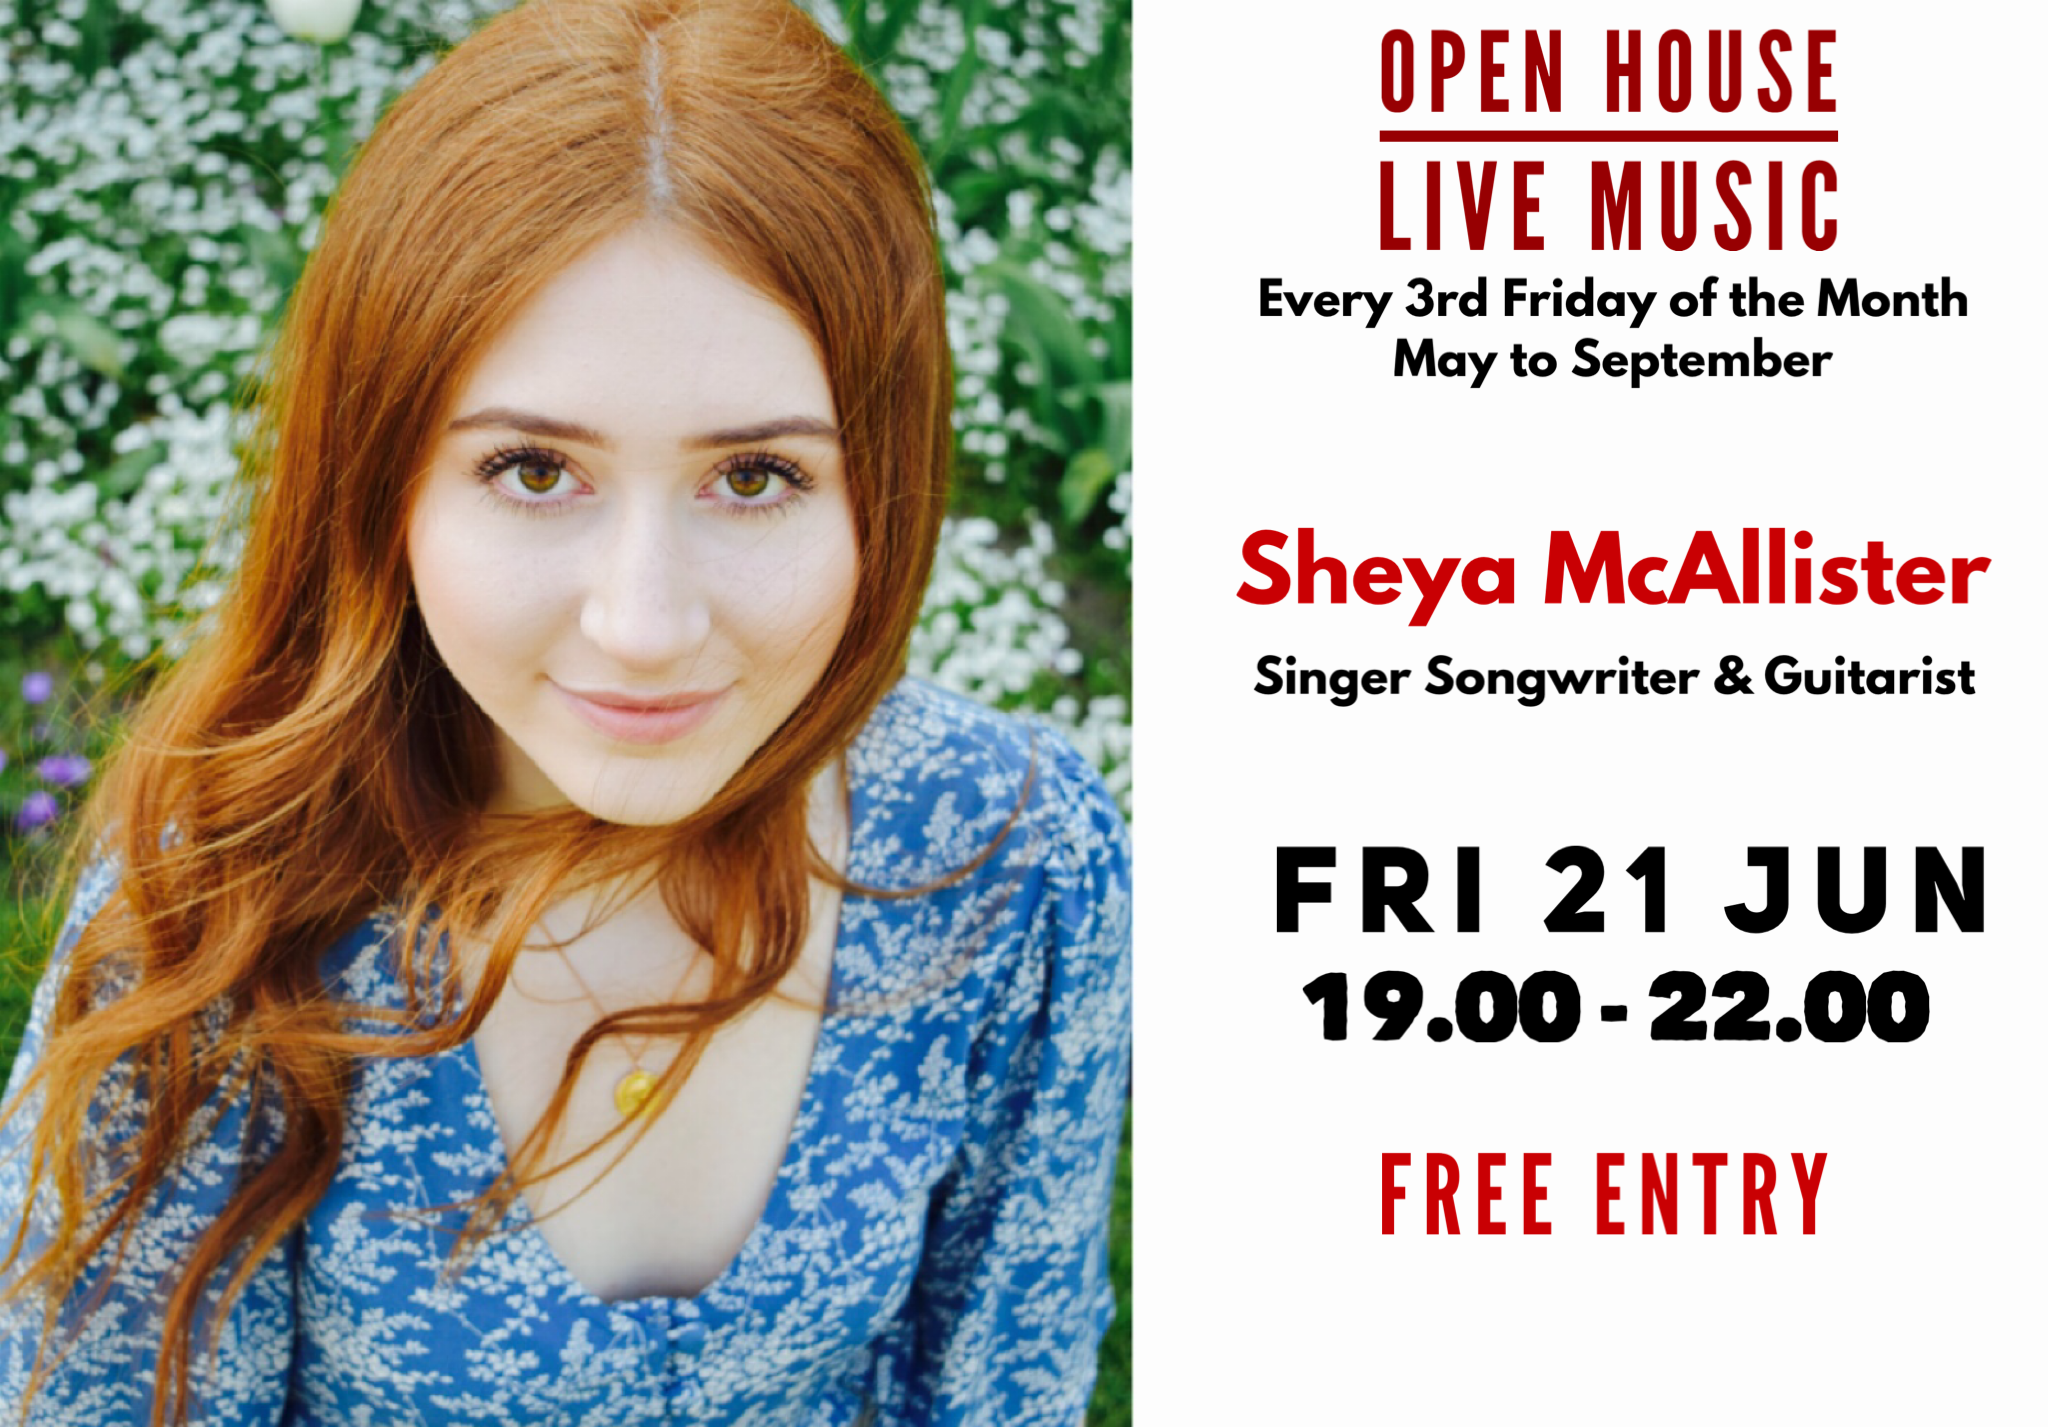 Open House Live Music Evening with Guitarist and Singer Songwriter Sheya McAllister